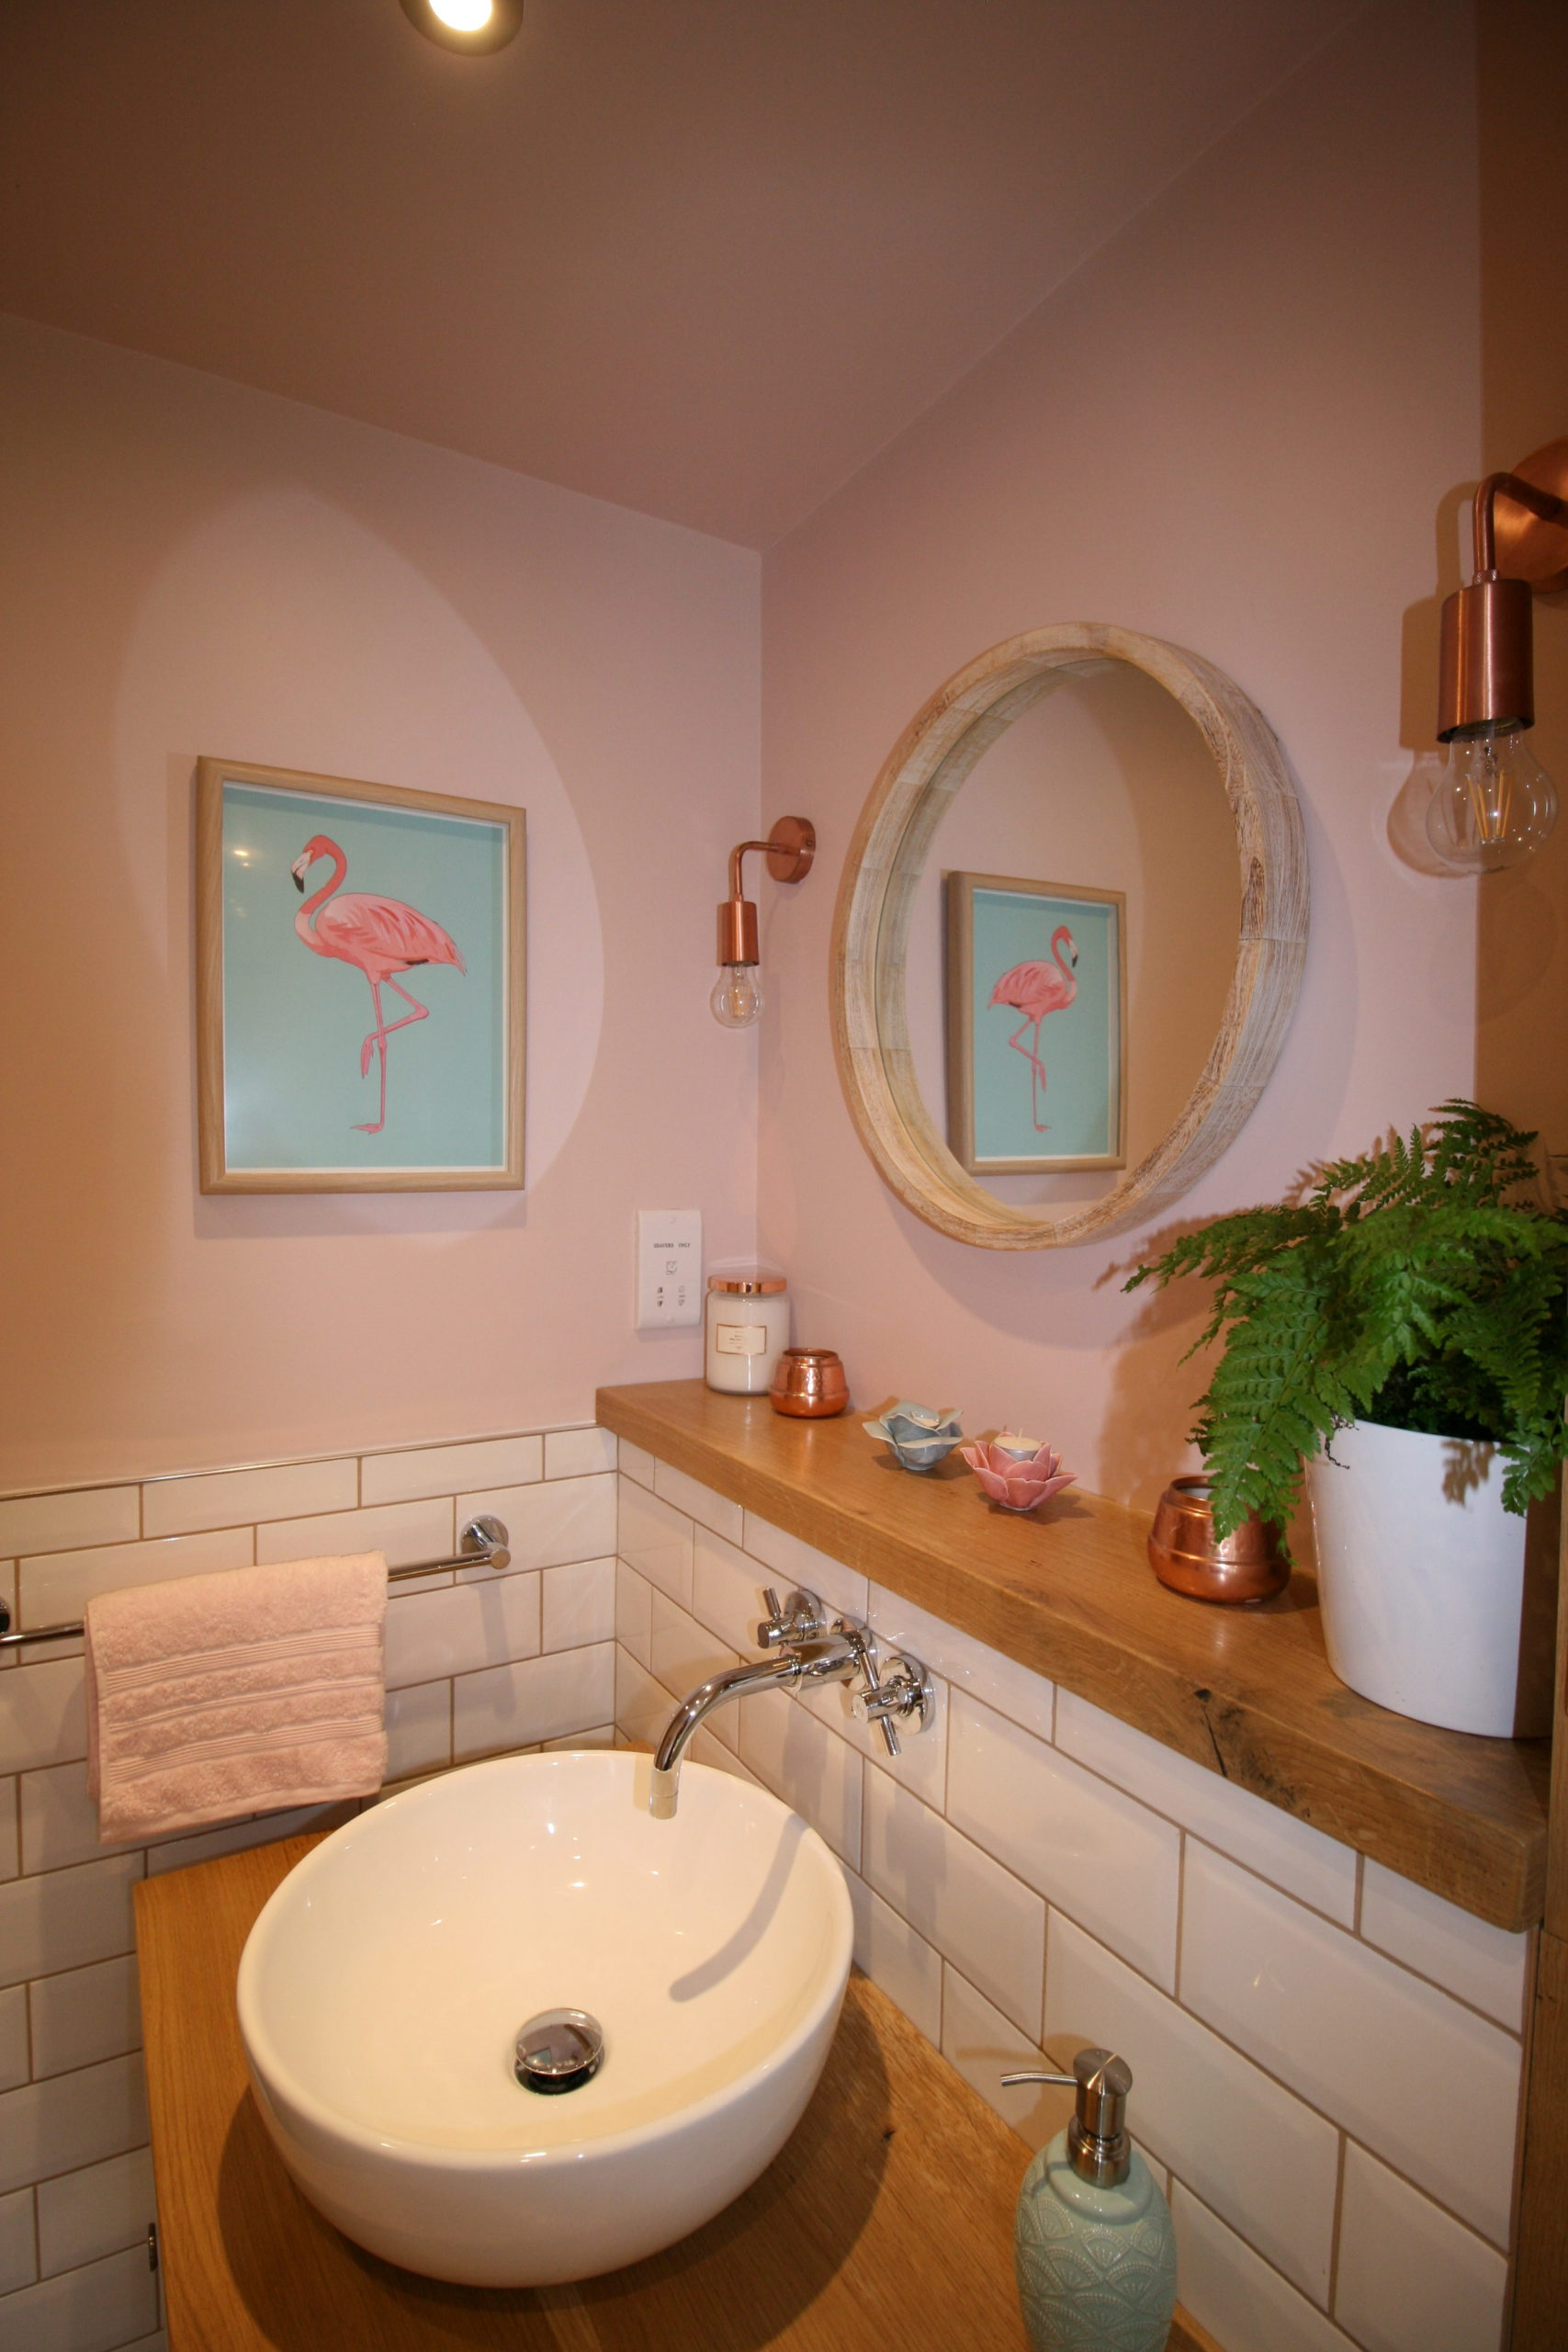 Bathrooms - Flamingo print and copper lights in bathroom designed by Amelia Wilson Interiors